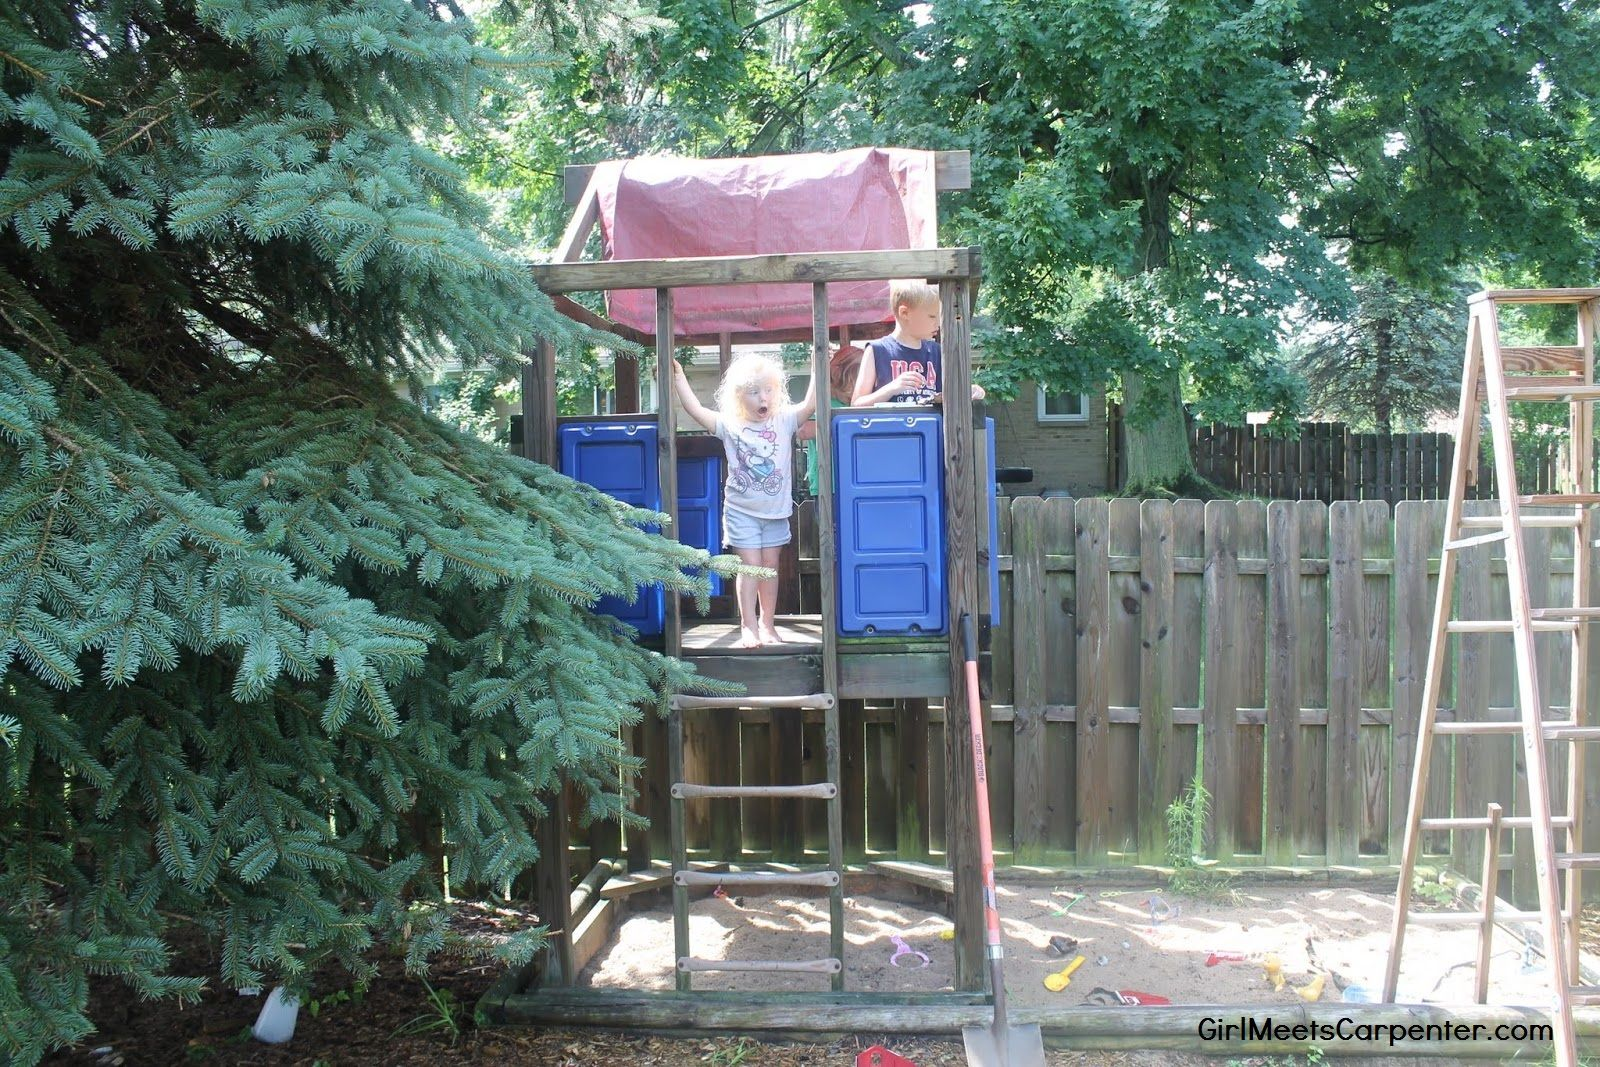 2 from backyard swing set to american ninja warrior course by